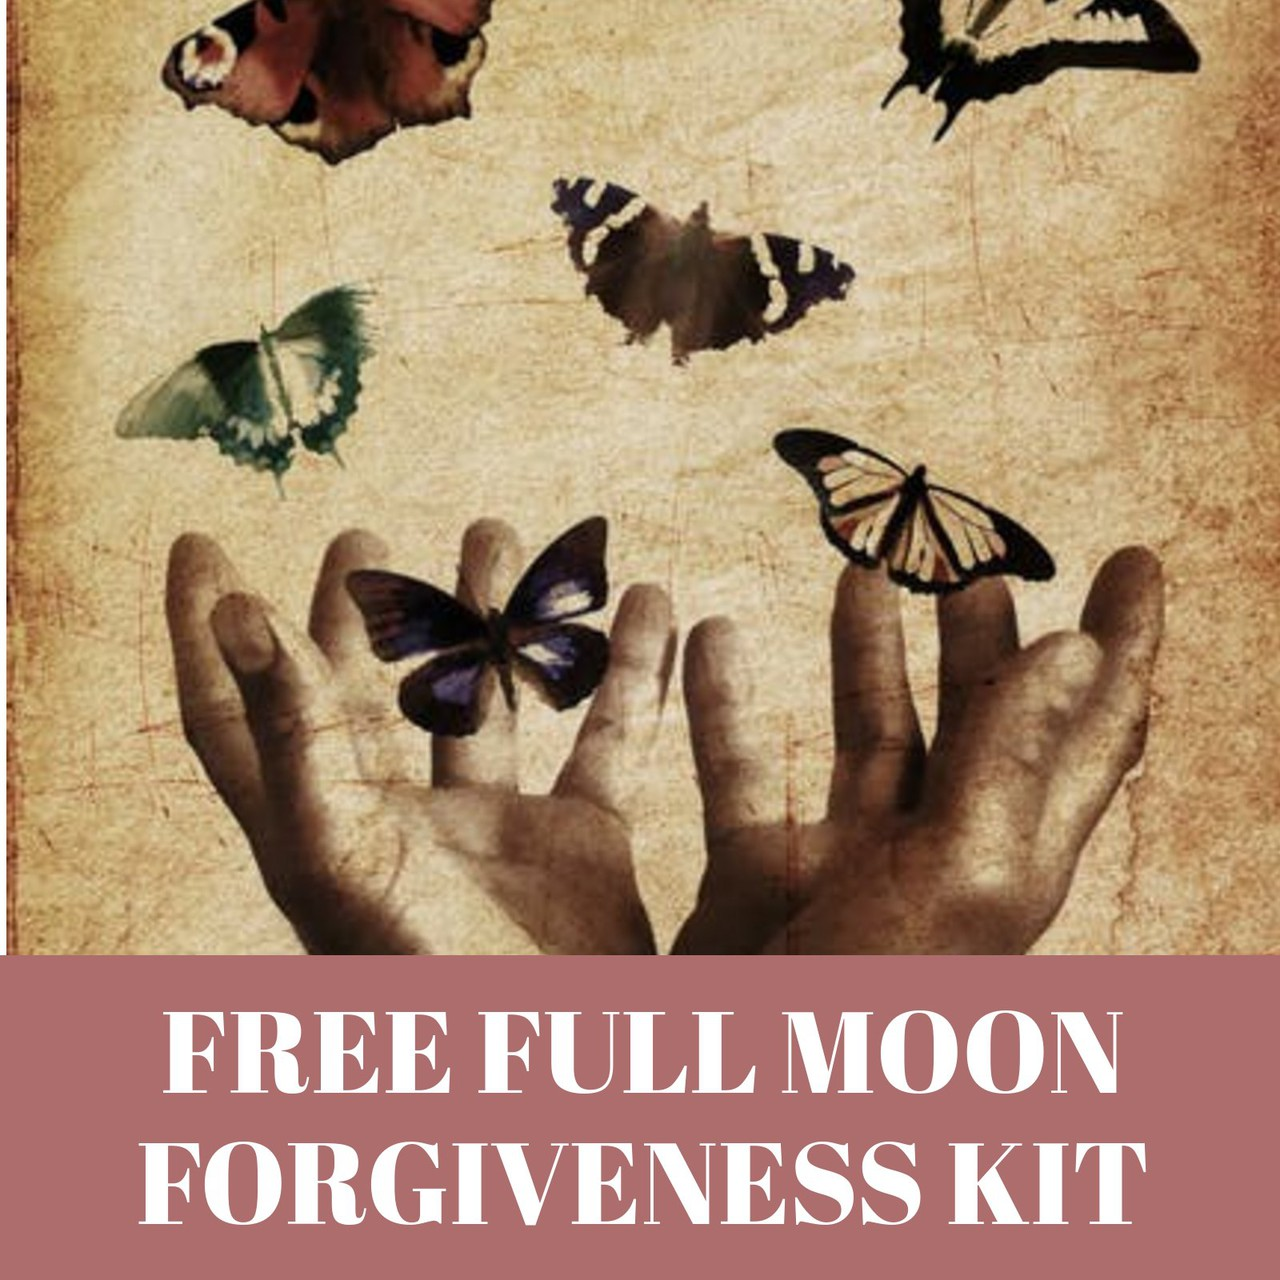 The Full Moon Forgiveness Kit